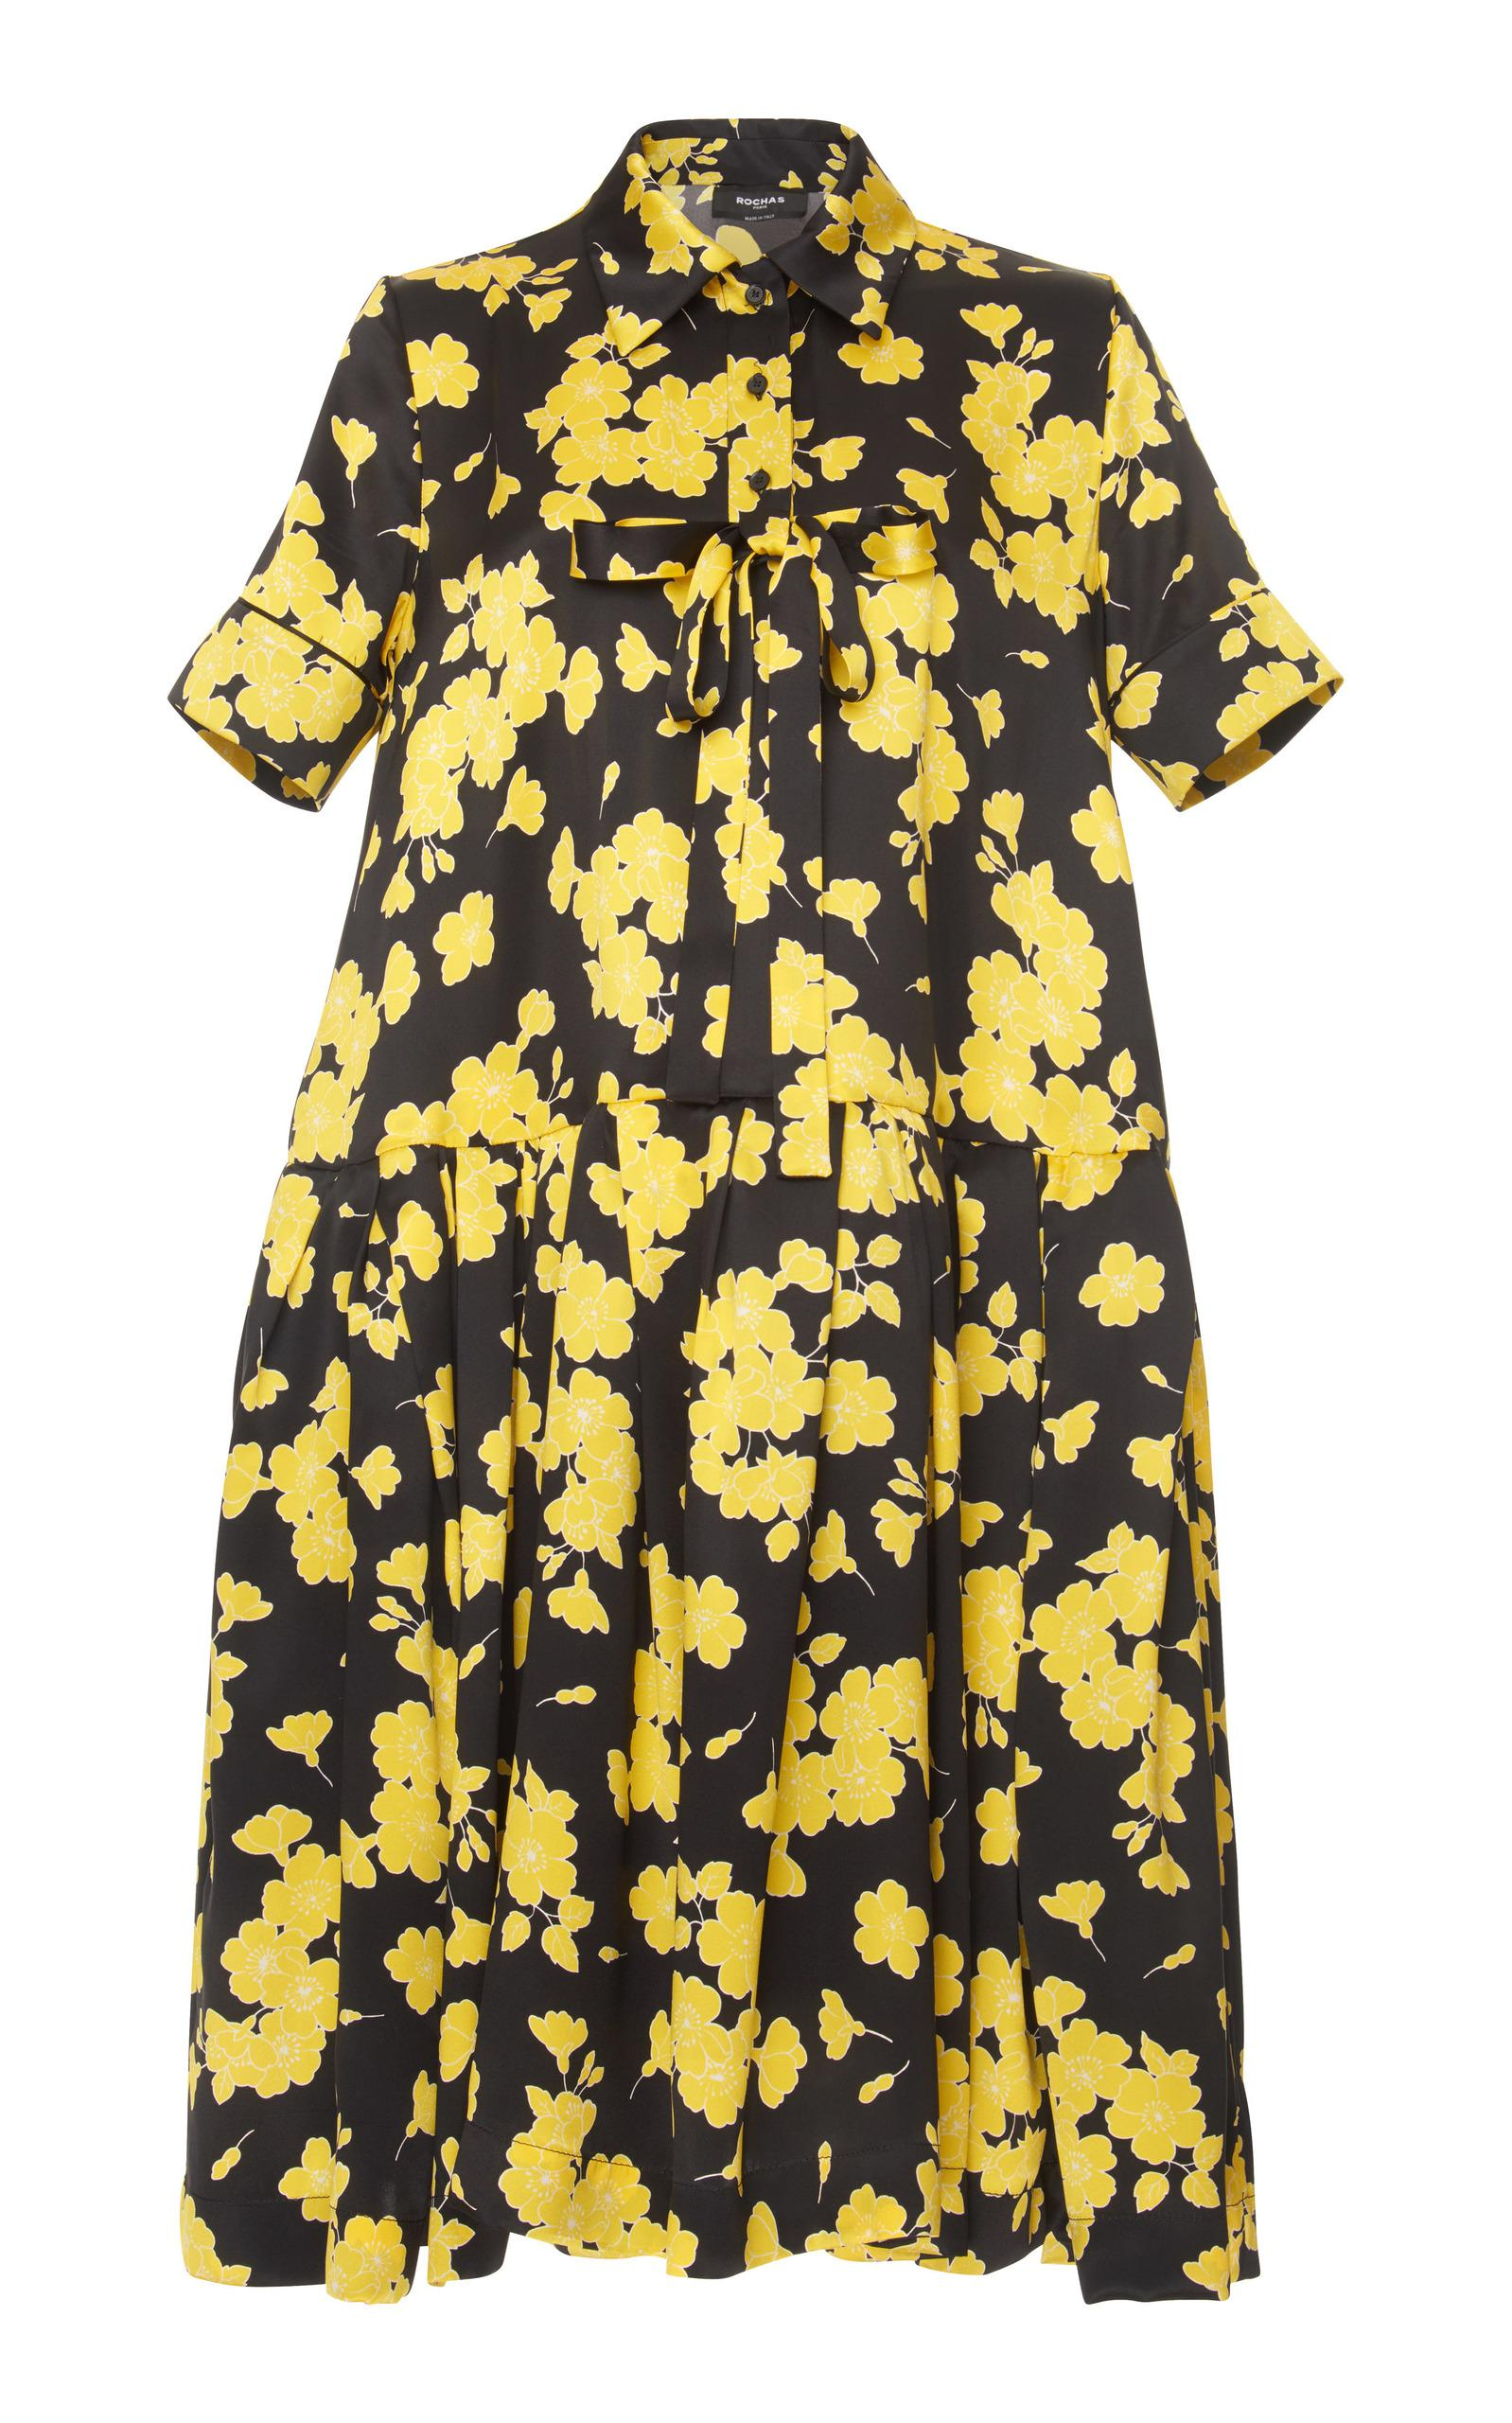 floral print flared shirt dress - Black Rochas For Sale Official Site Buy Cheap Best Wholesale Clearance Footlocker Pictures Cheap Price From China 2PI1II5iPj